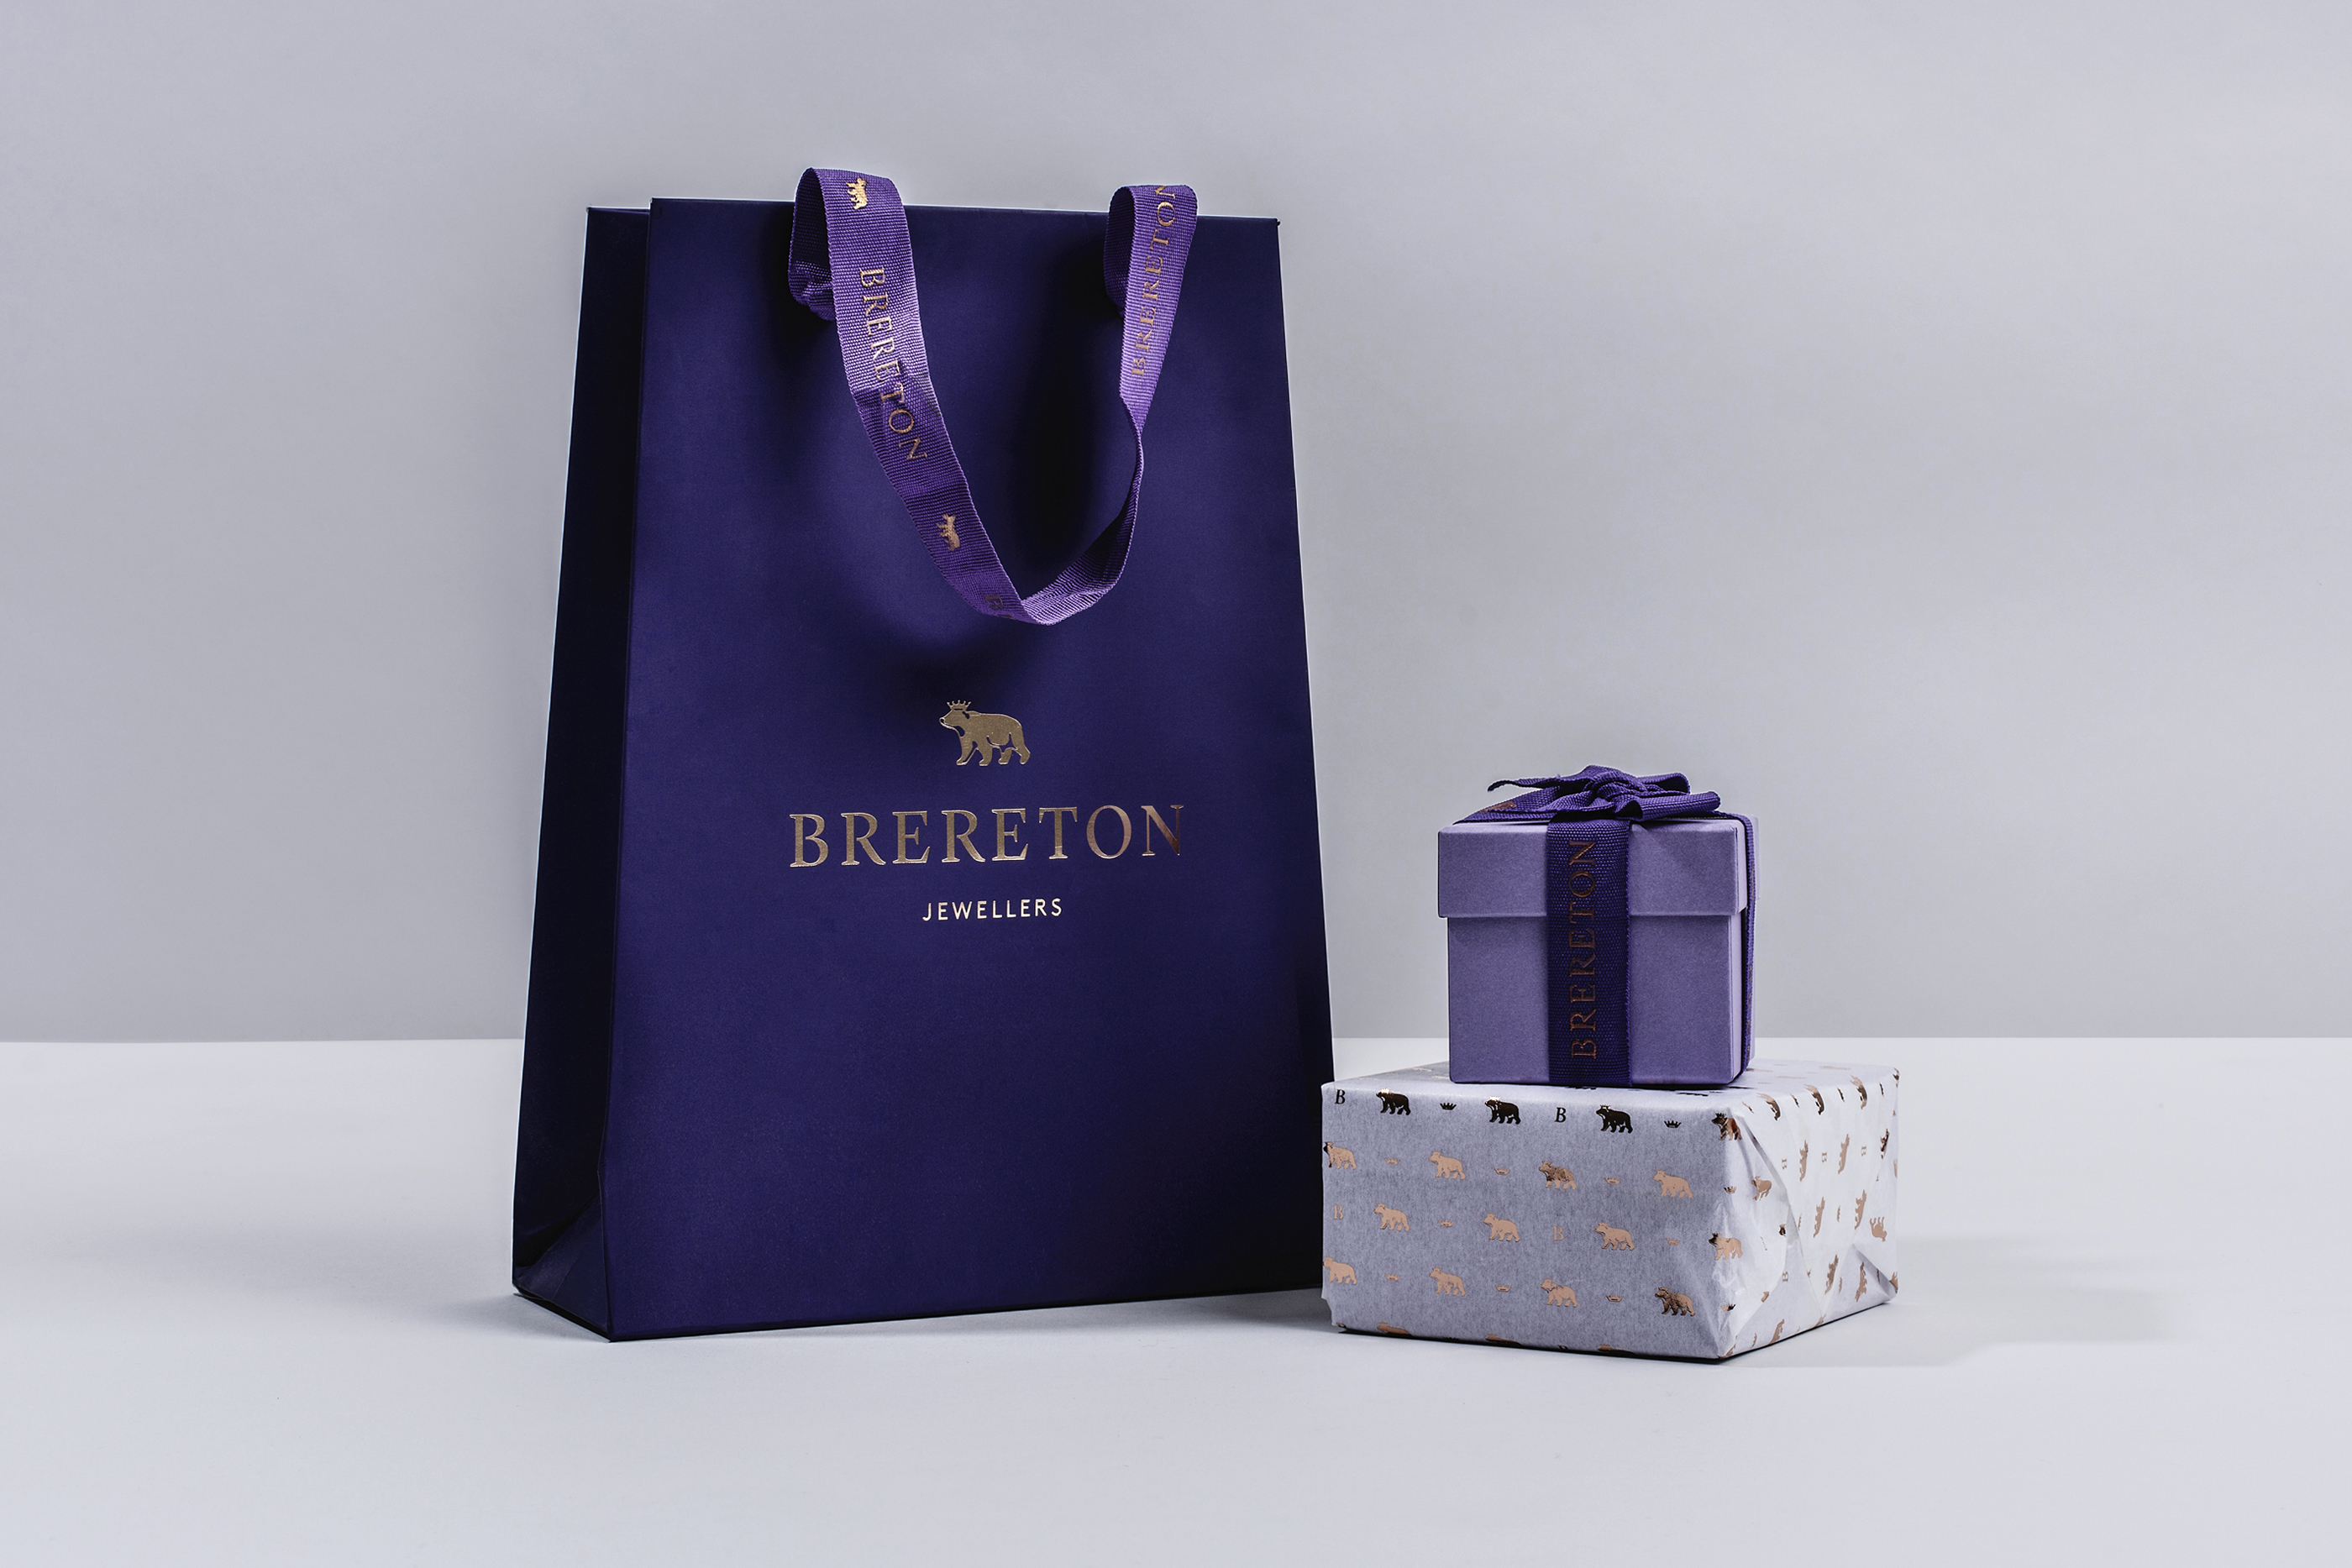 Cover image: Brereton Jewellers